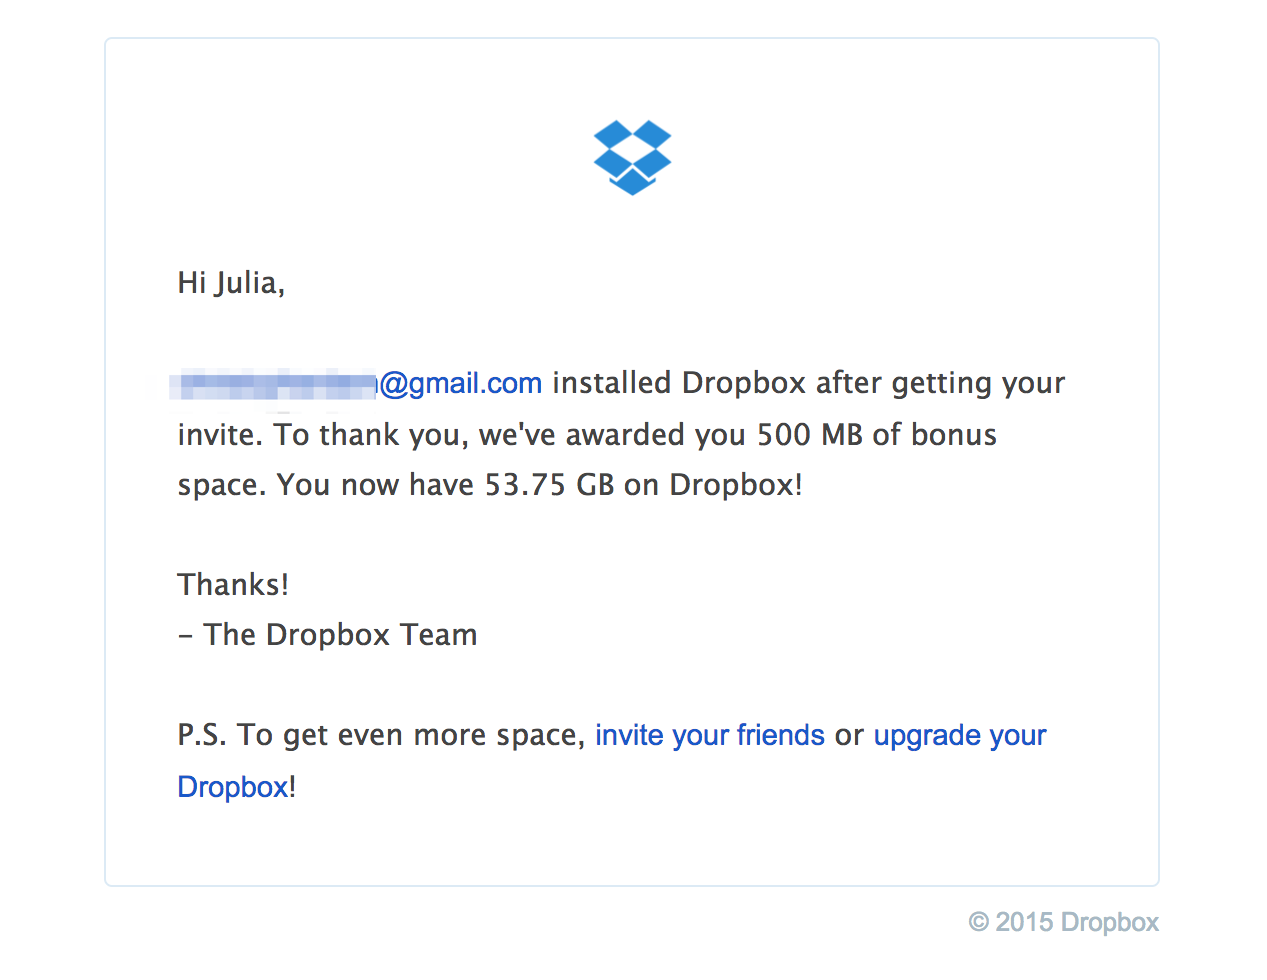 DropBox referral thank you email design